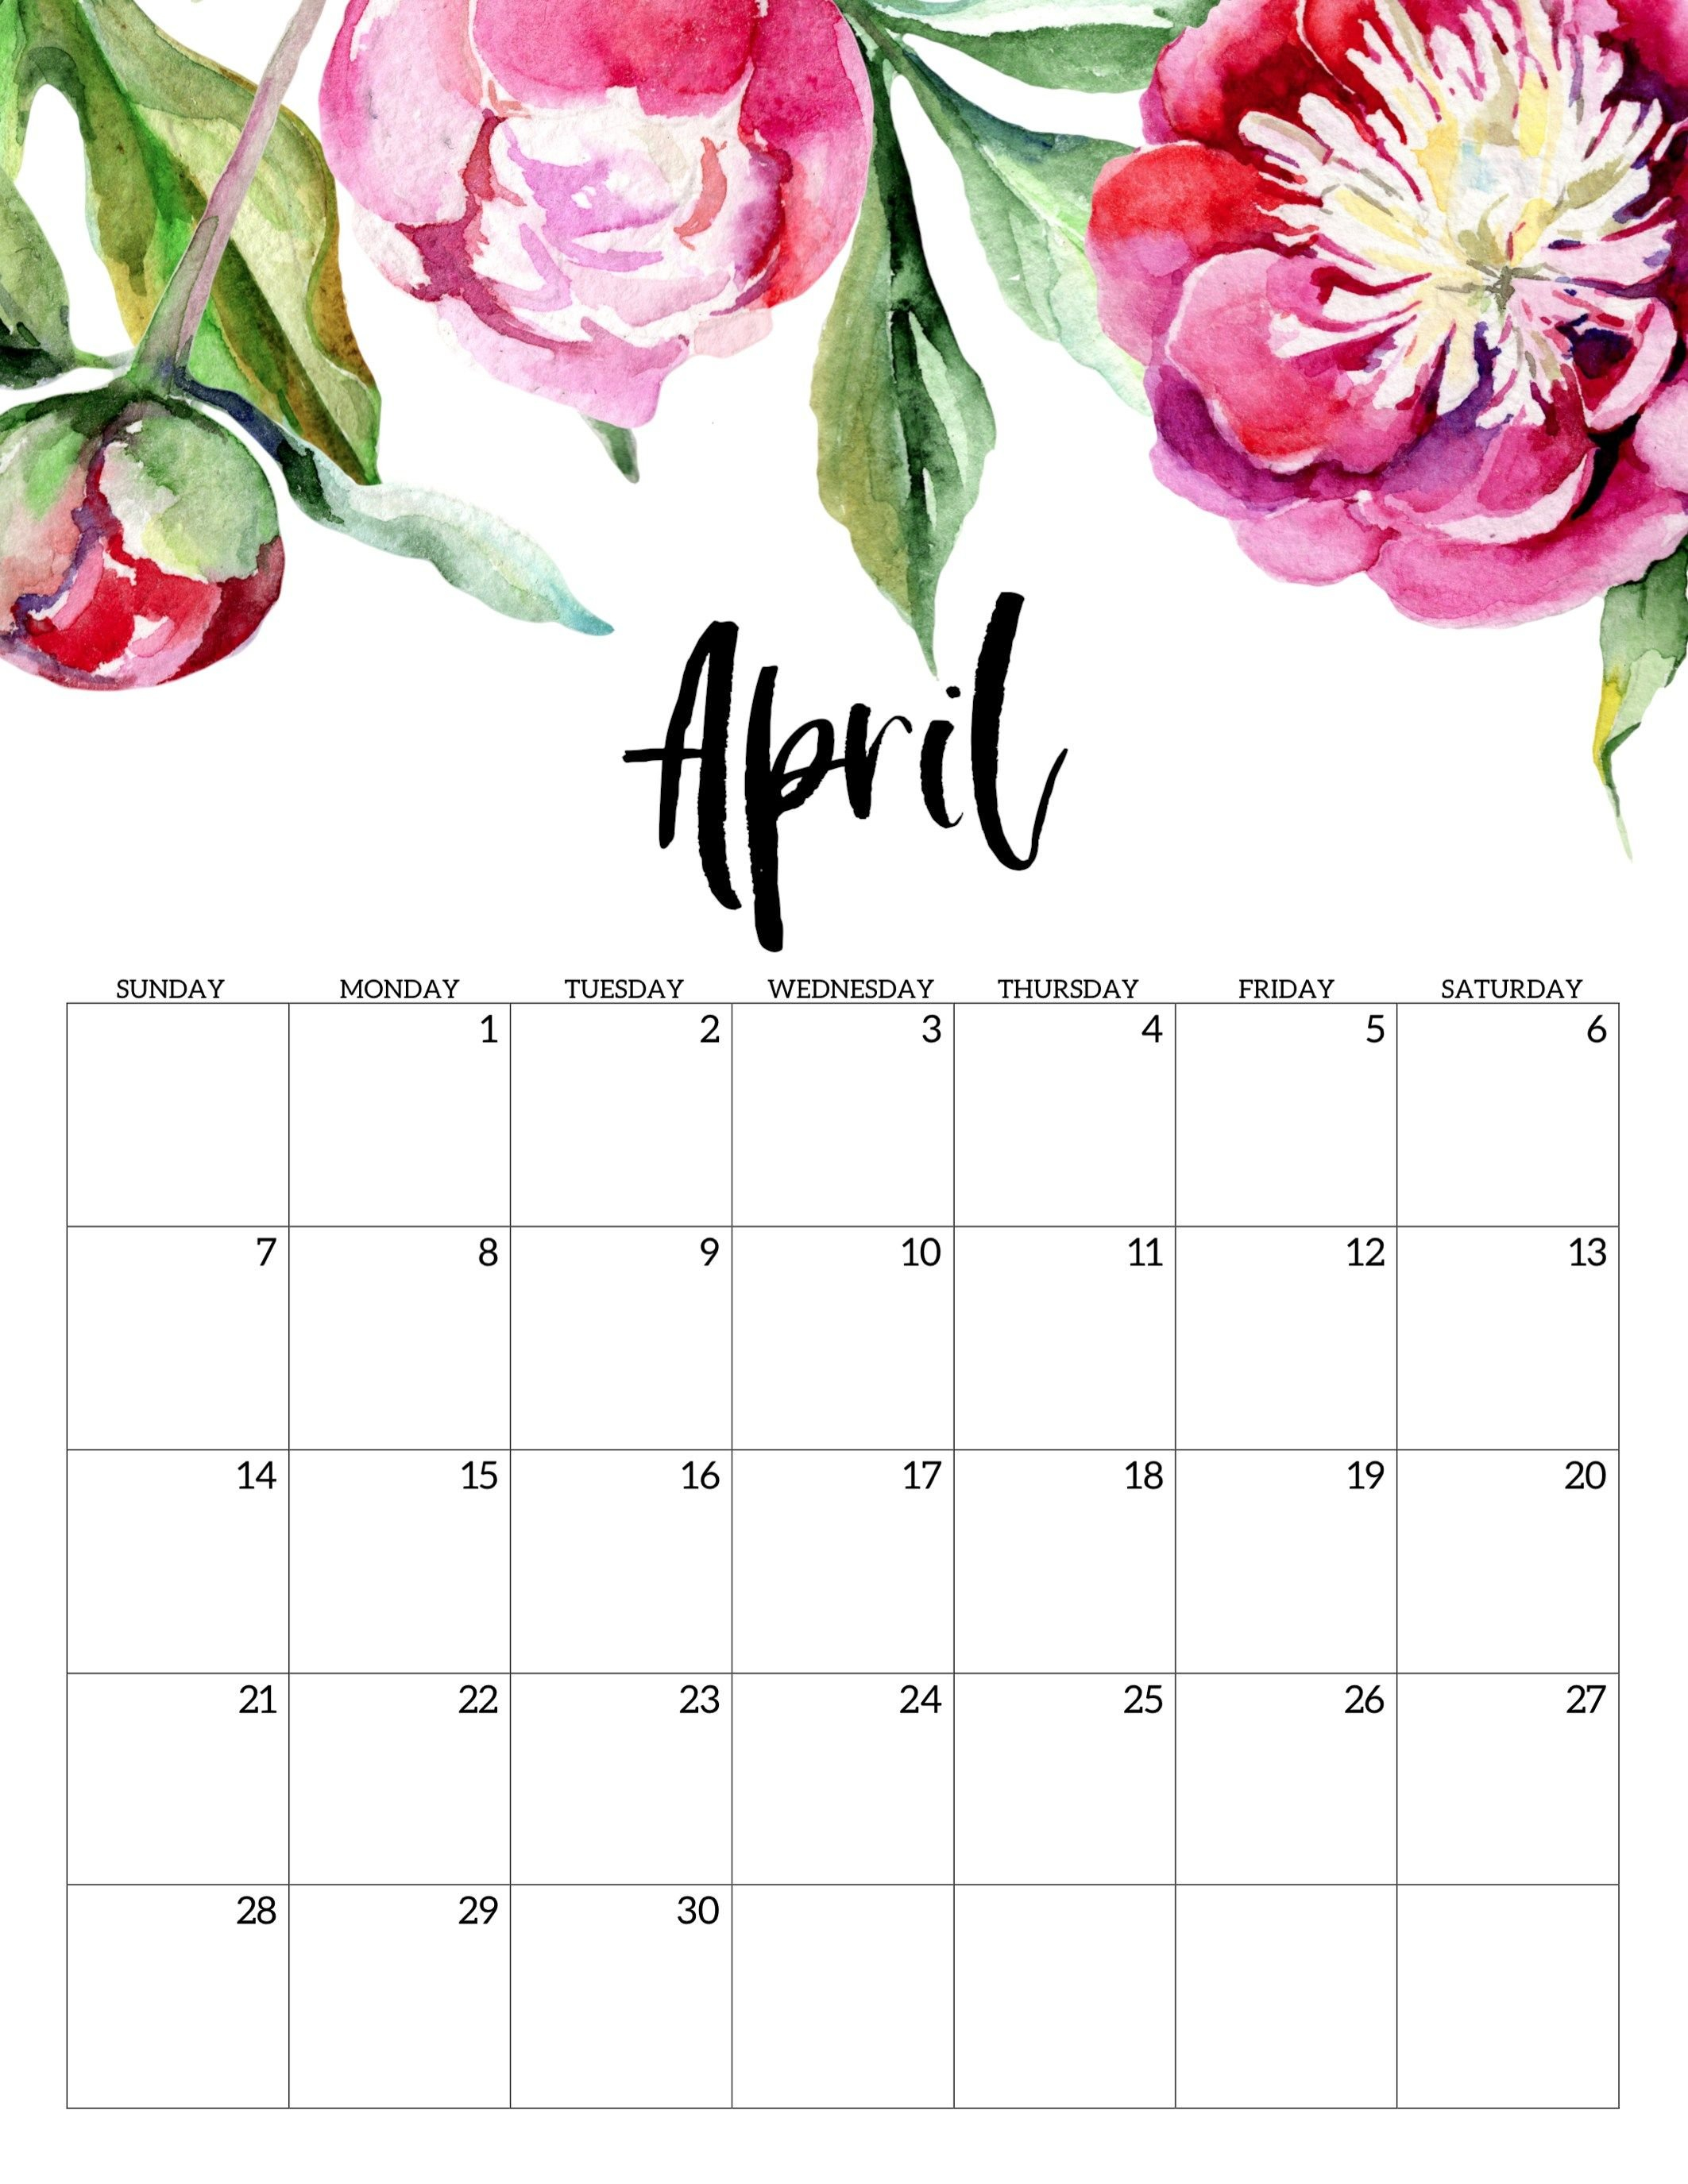 Free Printable Calendar 2019 - Floral | Печатные Календари Free No Download Printable Calendars